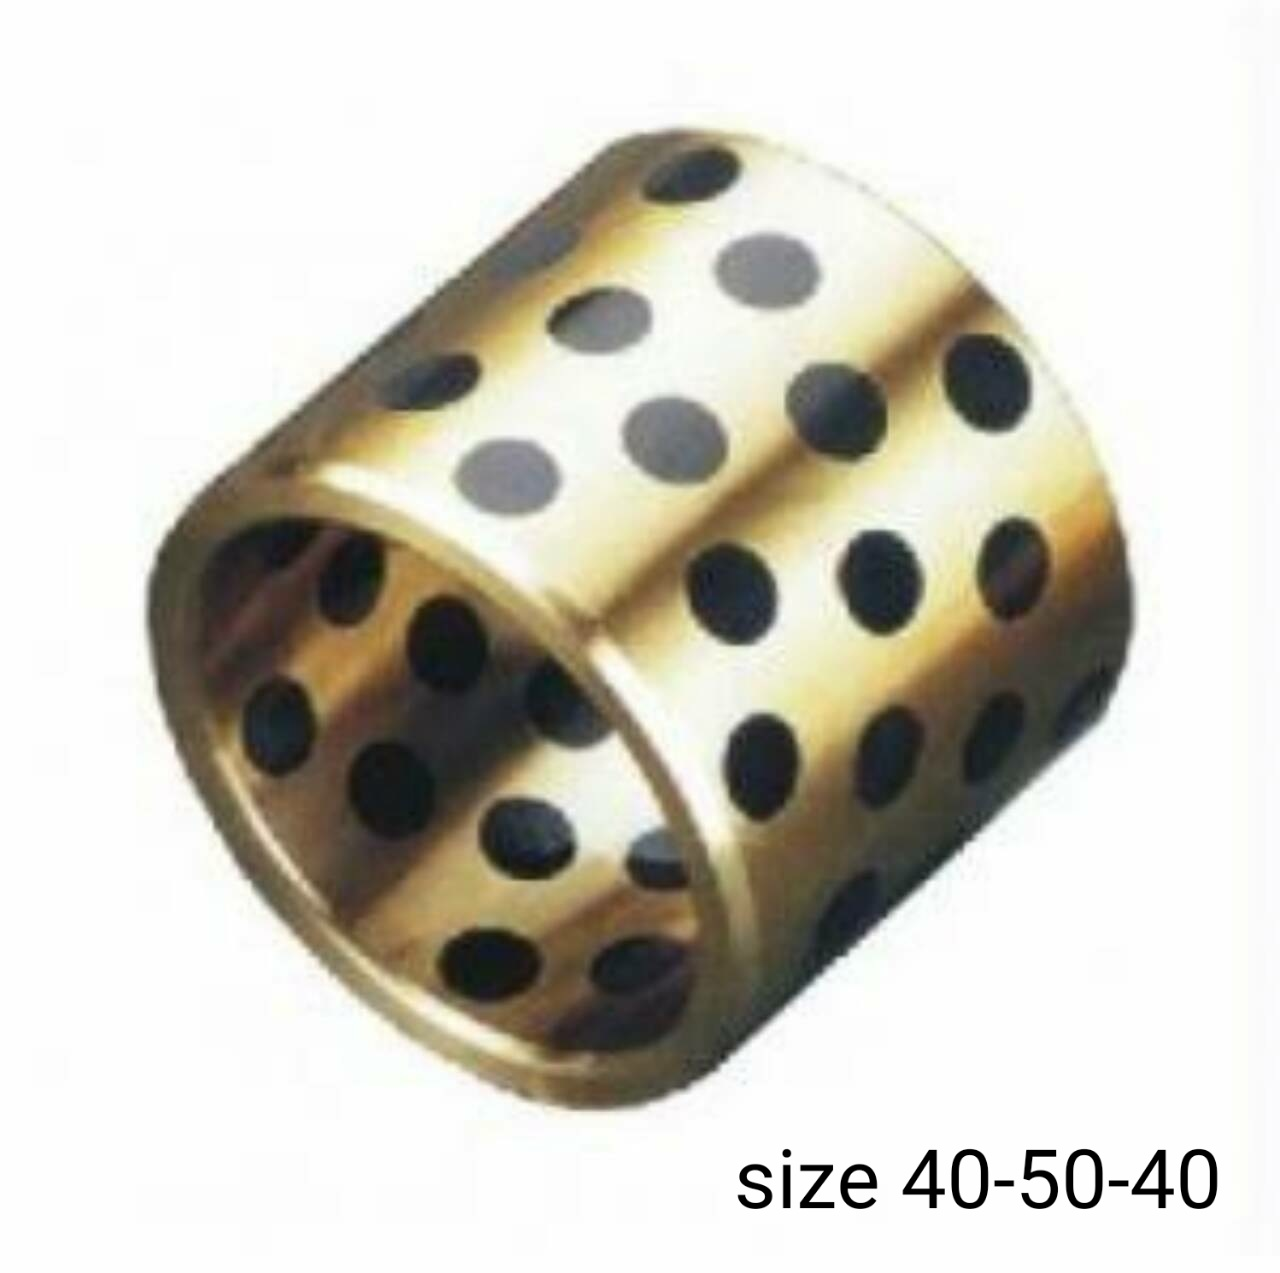 Wholesale Bearing Accessories Metric and Custom Bearing Bush Oilless Bearings Inch Sizes